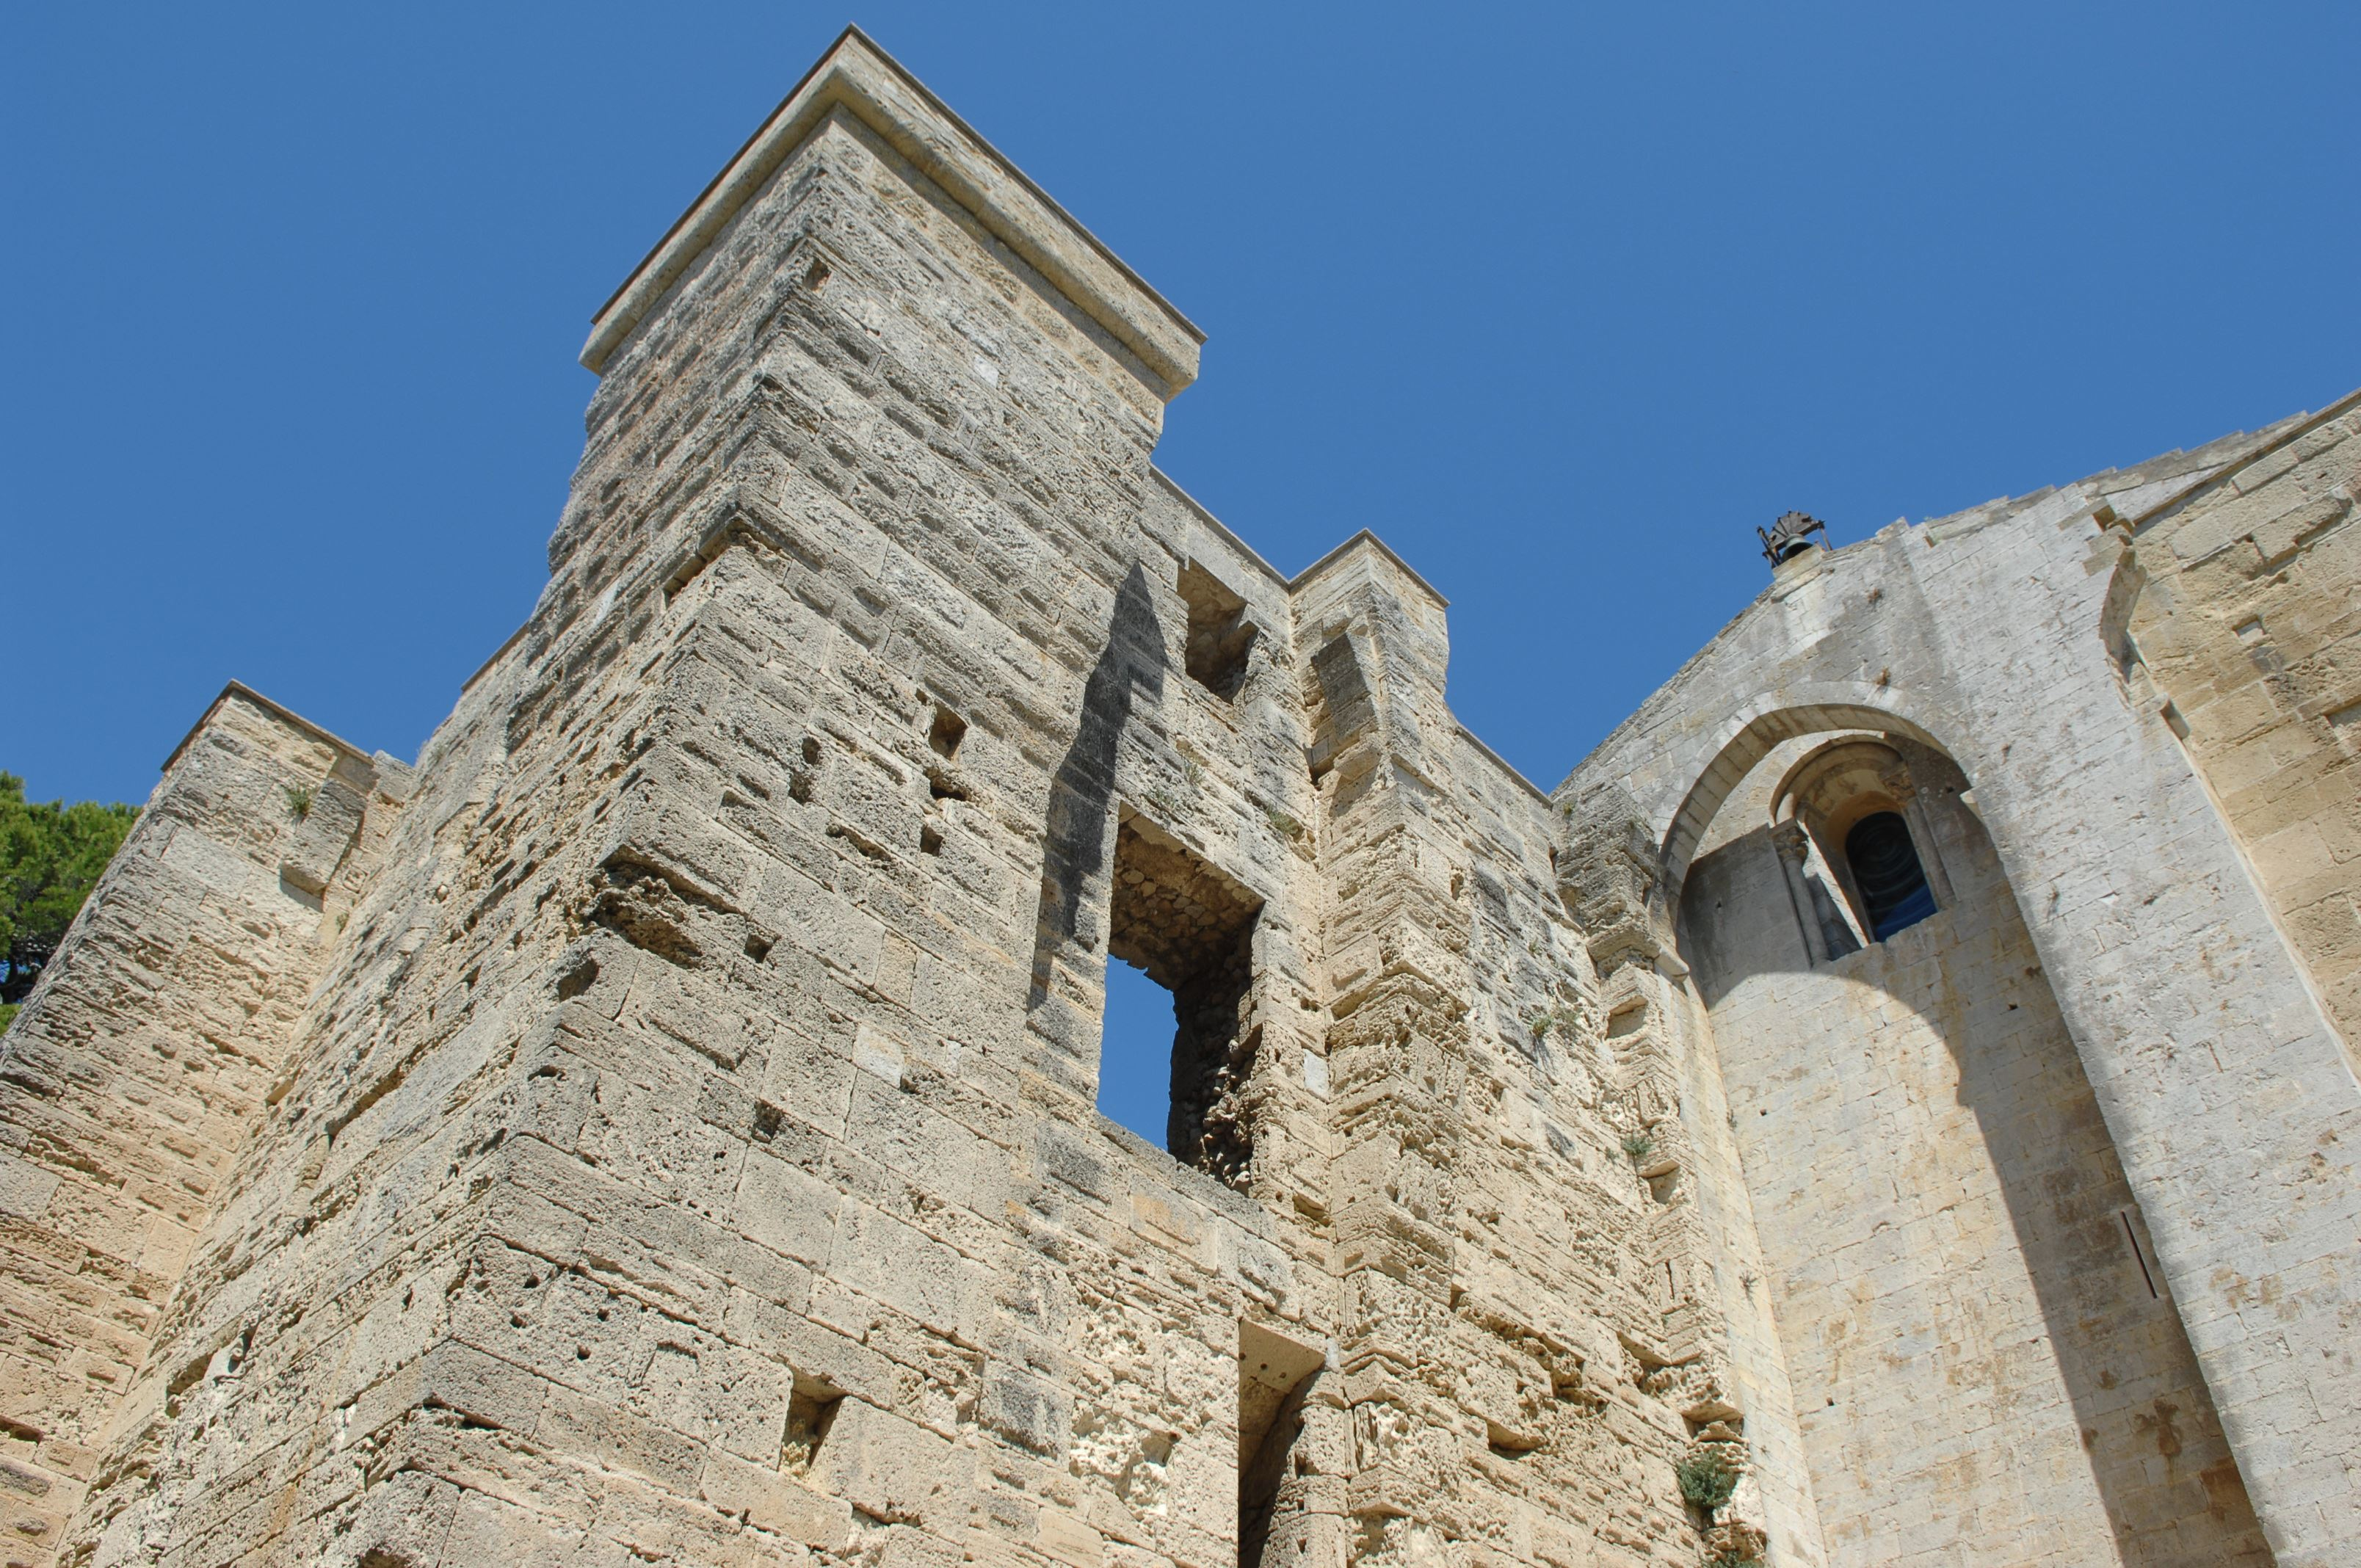 French guided tour - Villeneuve-lès-Maguelone, between land and sea